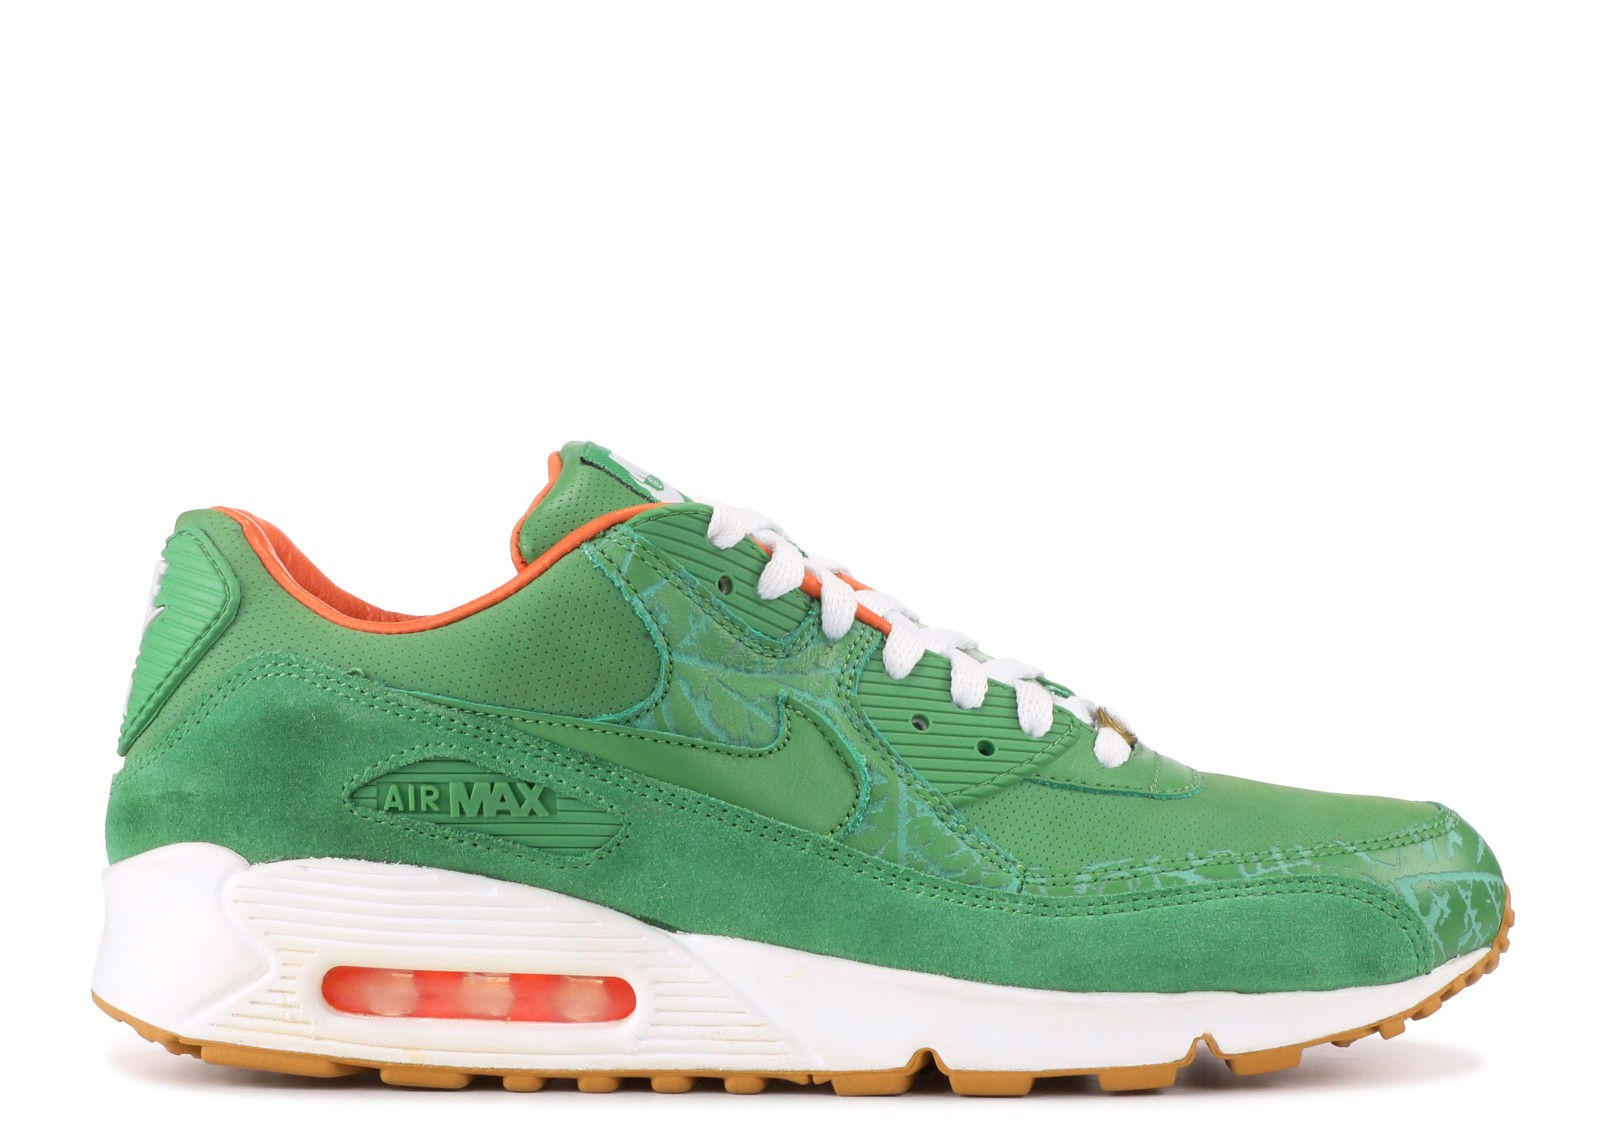 promo code 1c24e 5996d Prev Air Max 90 Premium Homegrown Orange Grass Blaze 315728-331. Zoom. Move  your mouse over image or click to enlarge